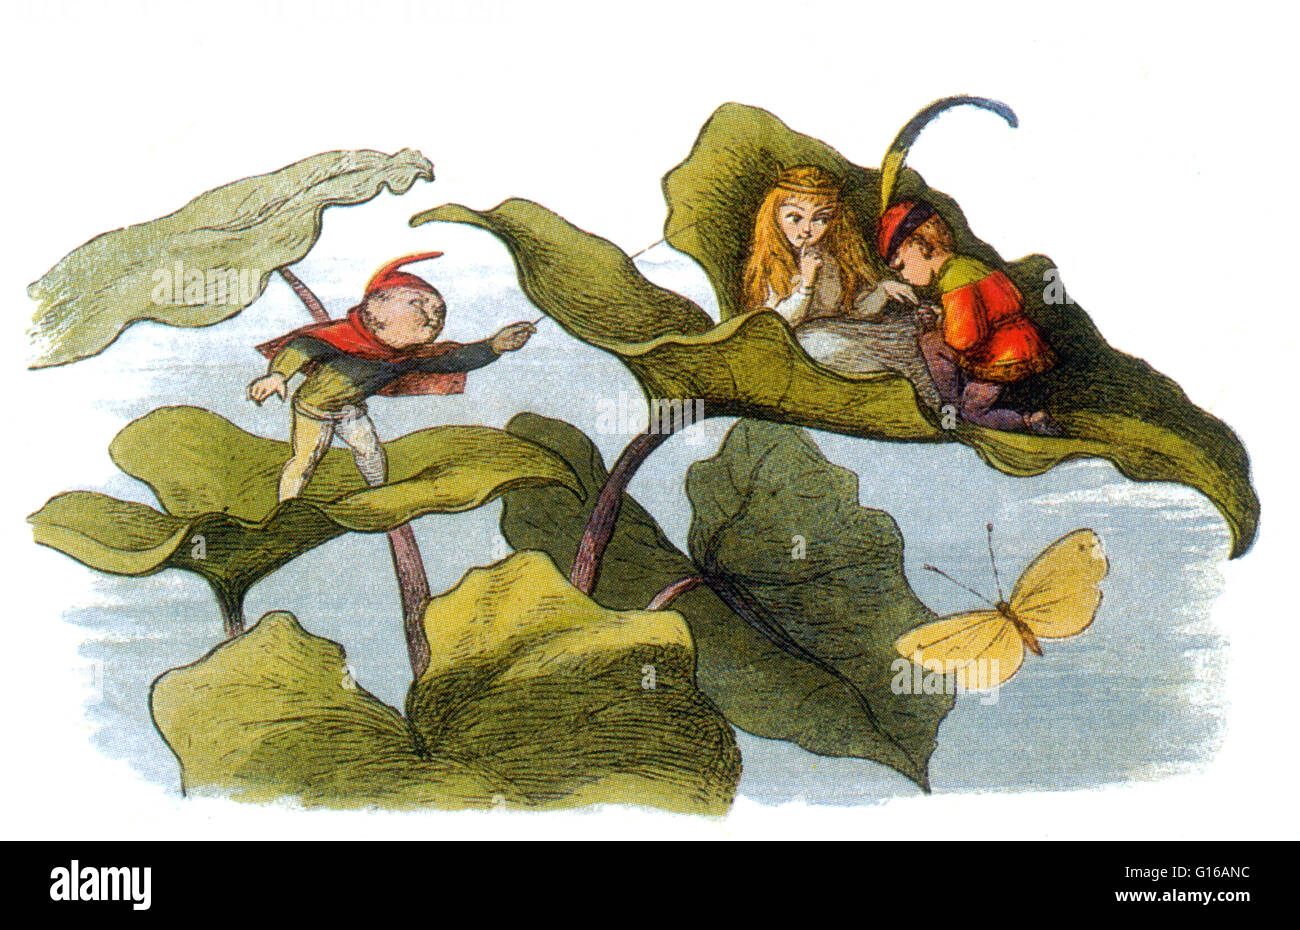 Fairy Courtship Cut Short. A fairy is a type of mythical being or legendary creature in European folklore, a form - Stock Image